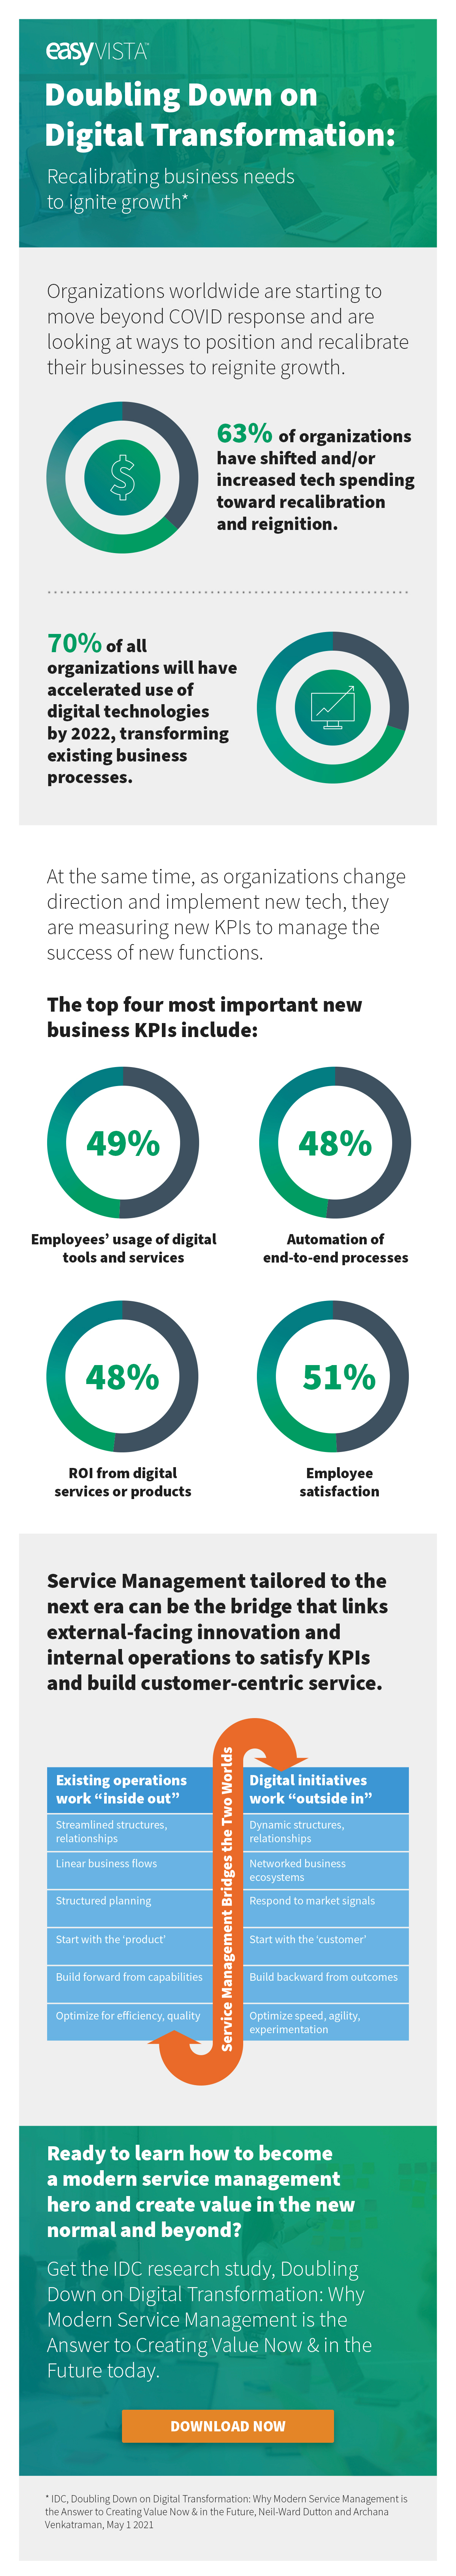 NAM_IDC Research Study EasyVista_Infographic_Doubling Down on Digital Transformation_EN